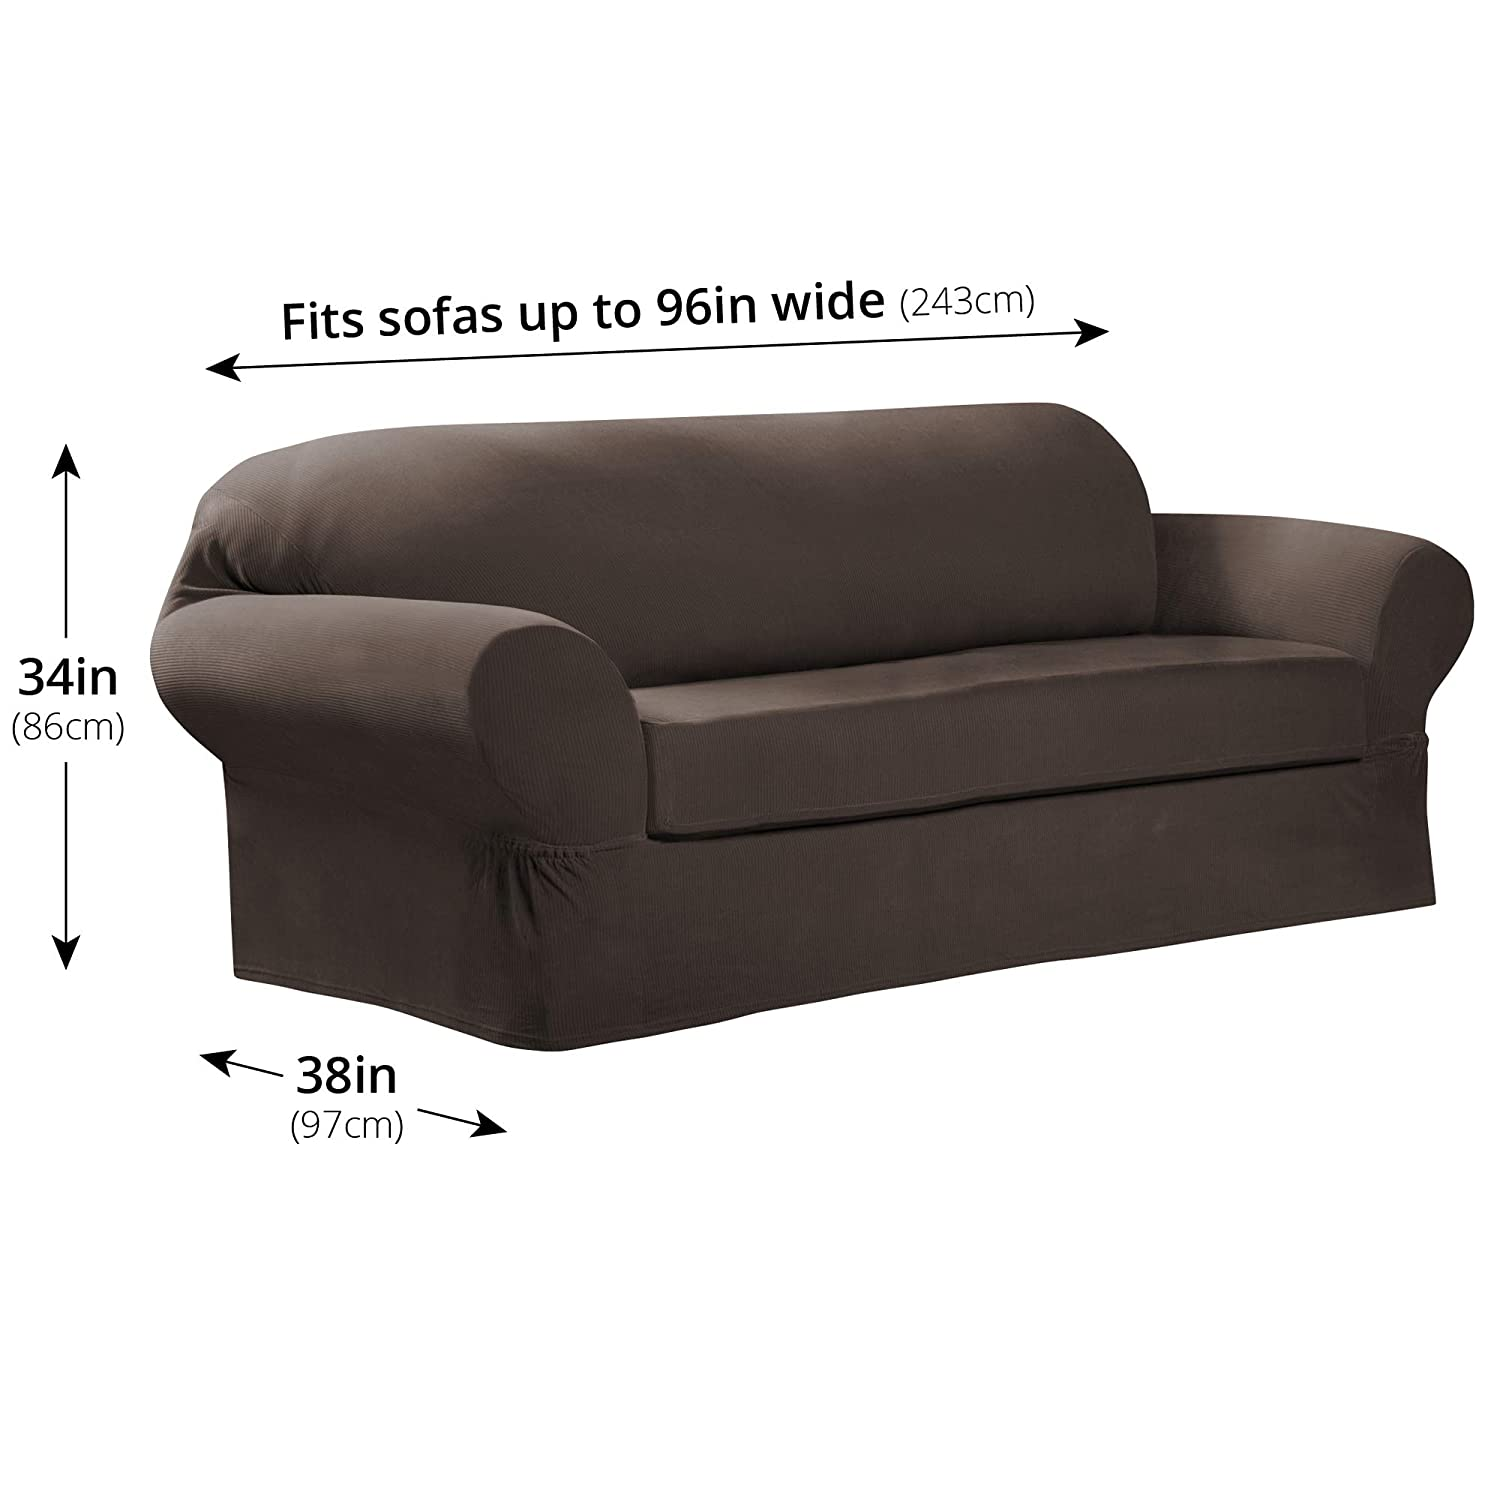 MAYTEX Collin Stretch - Funda para sofá, Moca, Sofa: Amazon ...